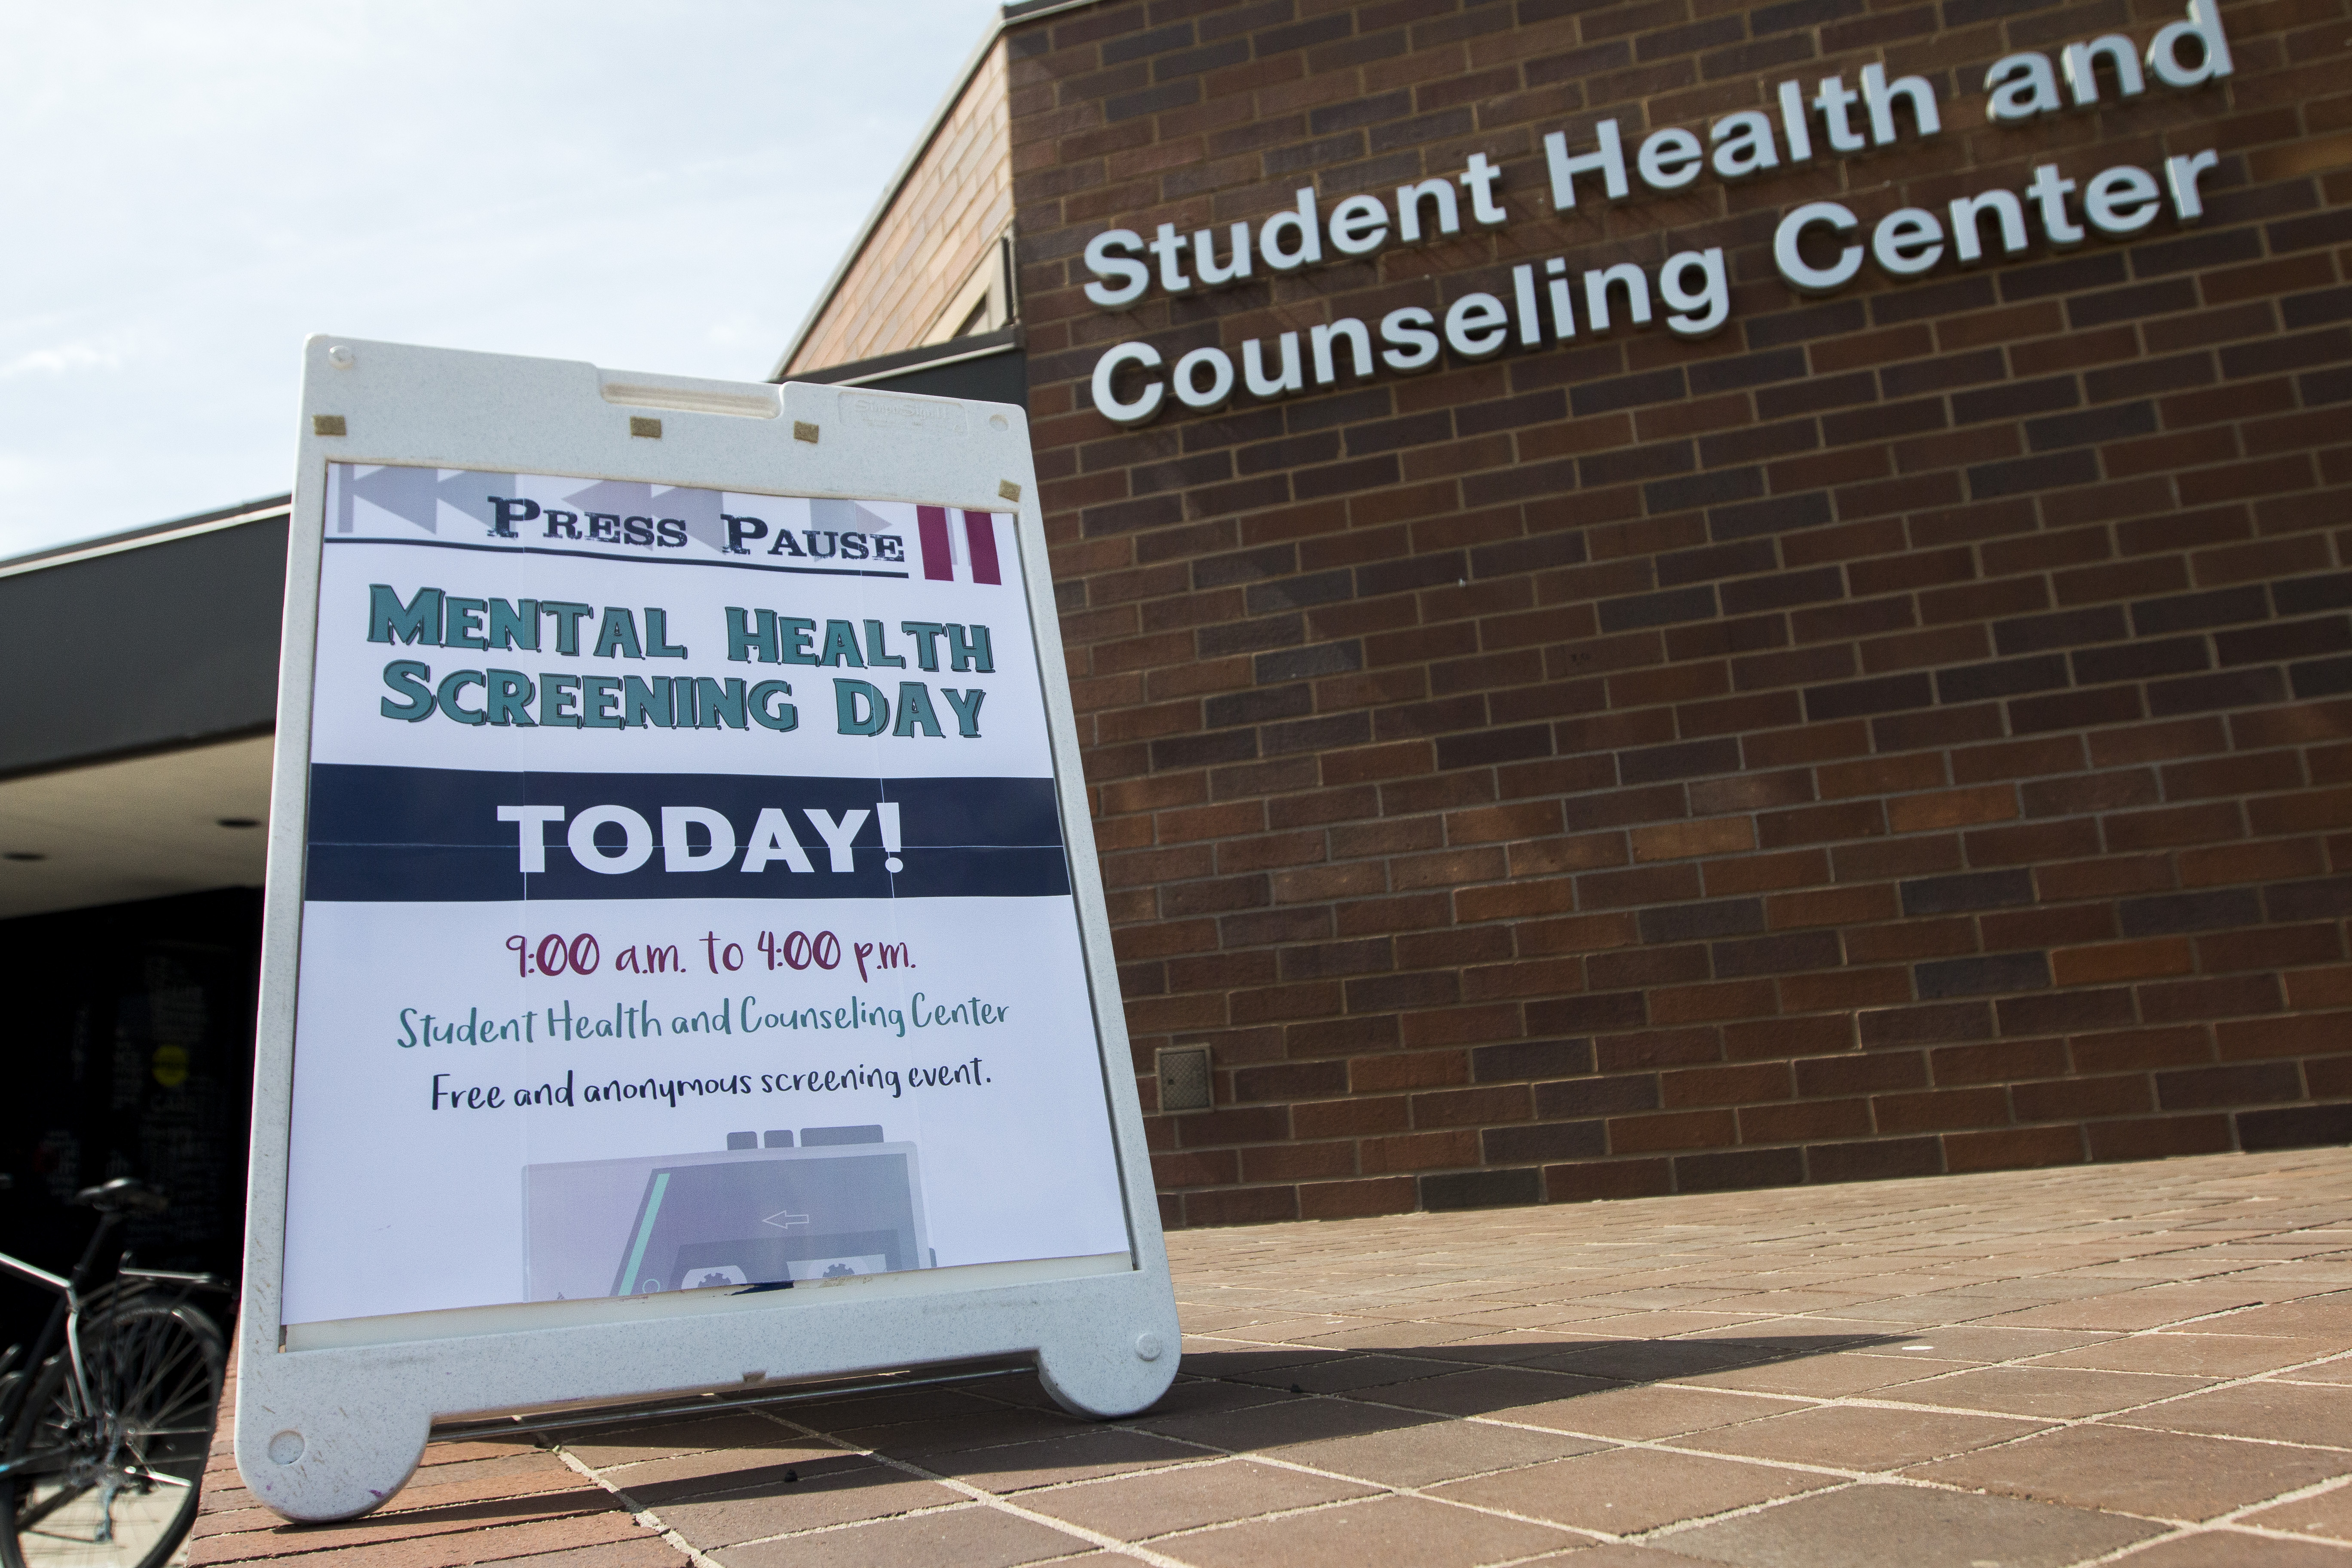 Taking A Pause And Focusing On Mental Health The Collegian